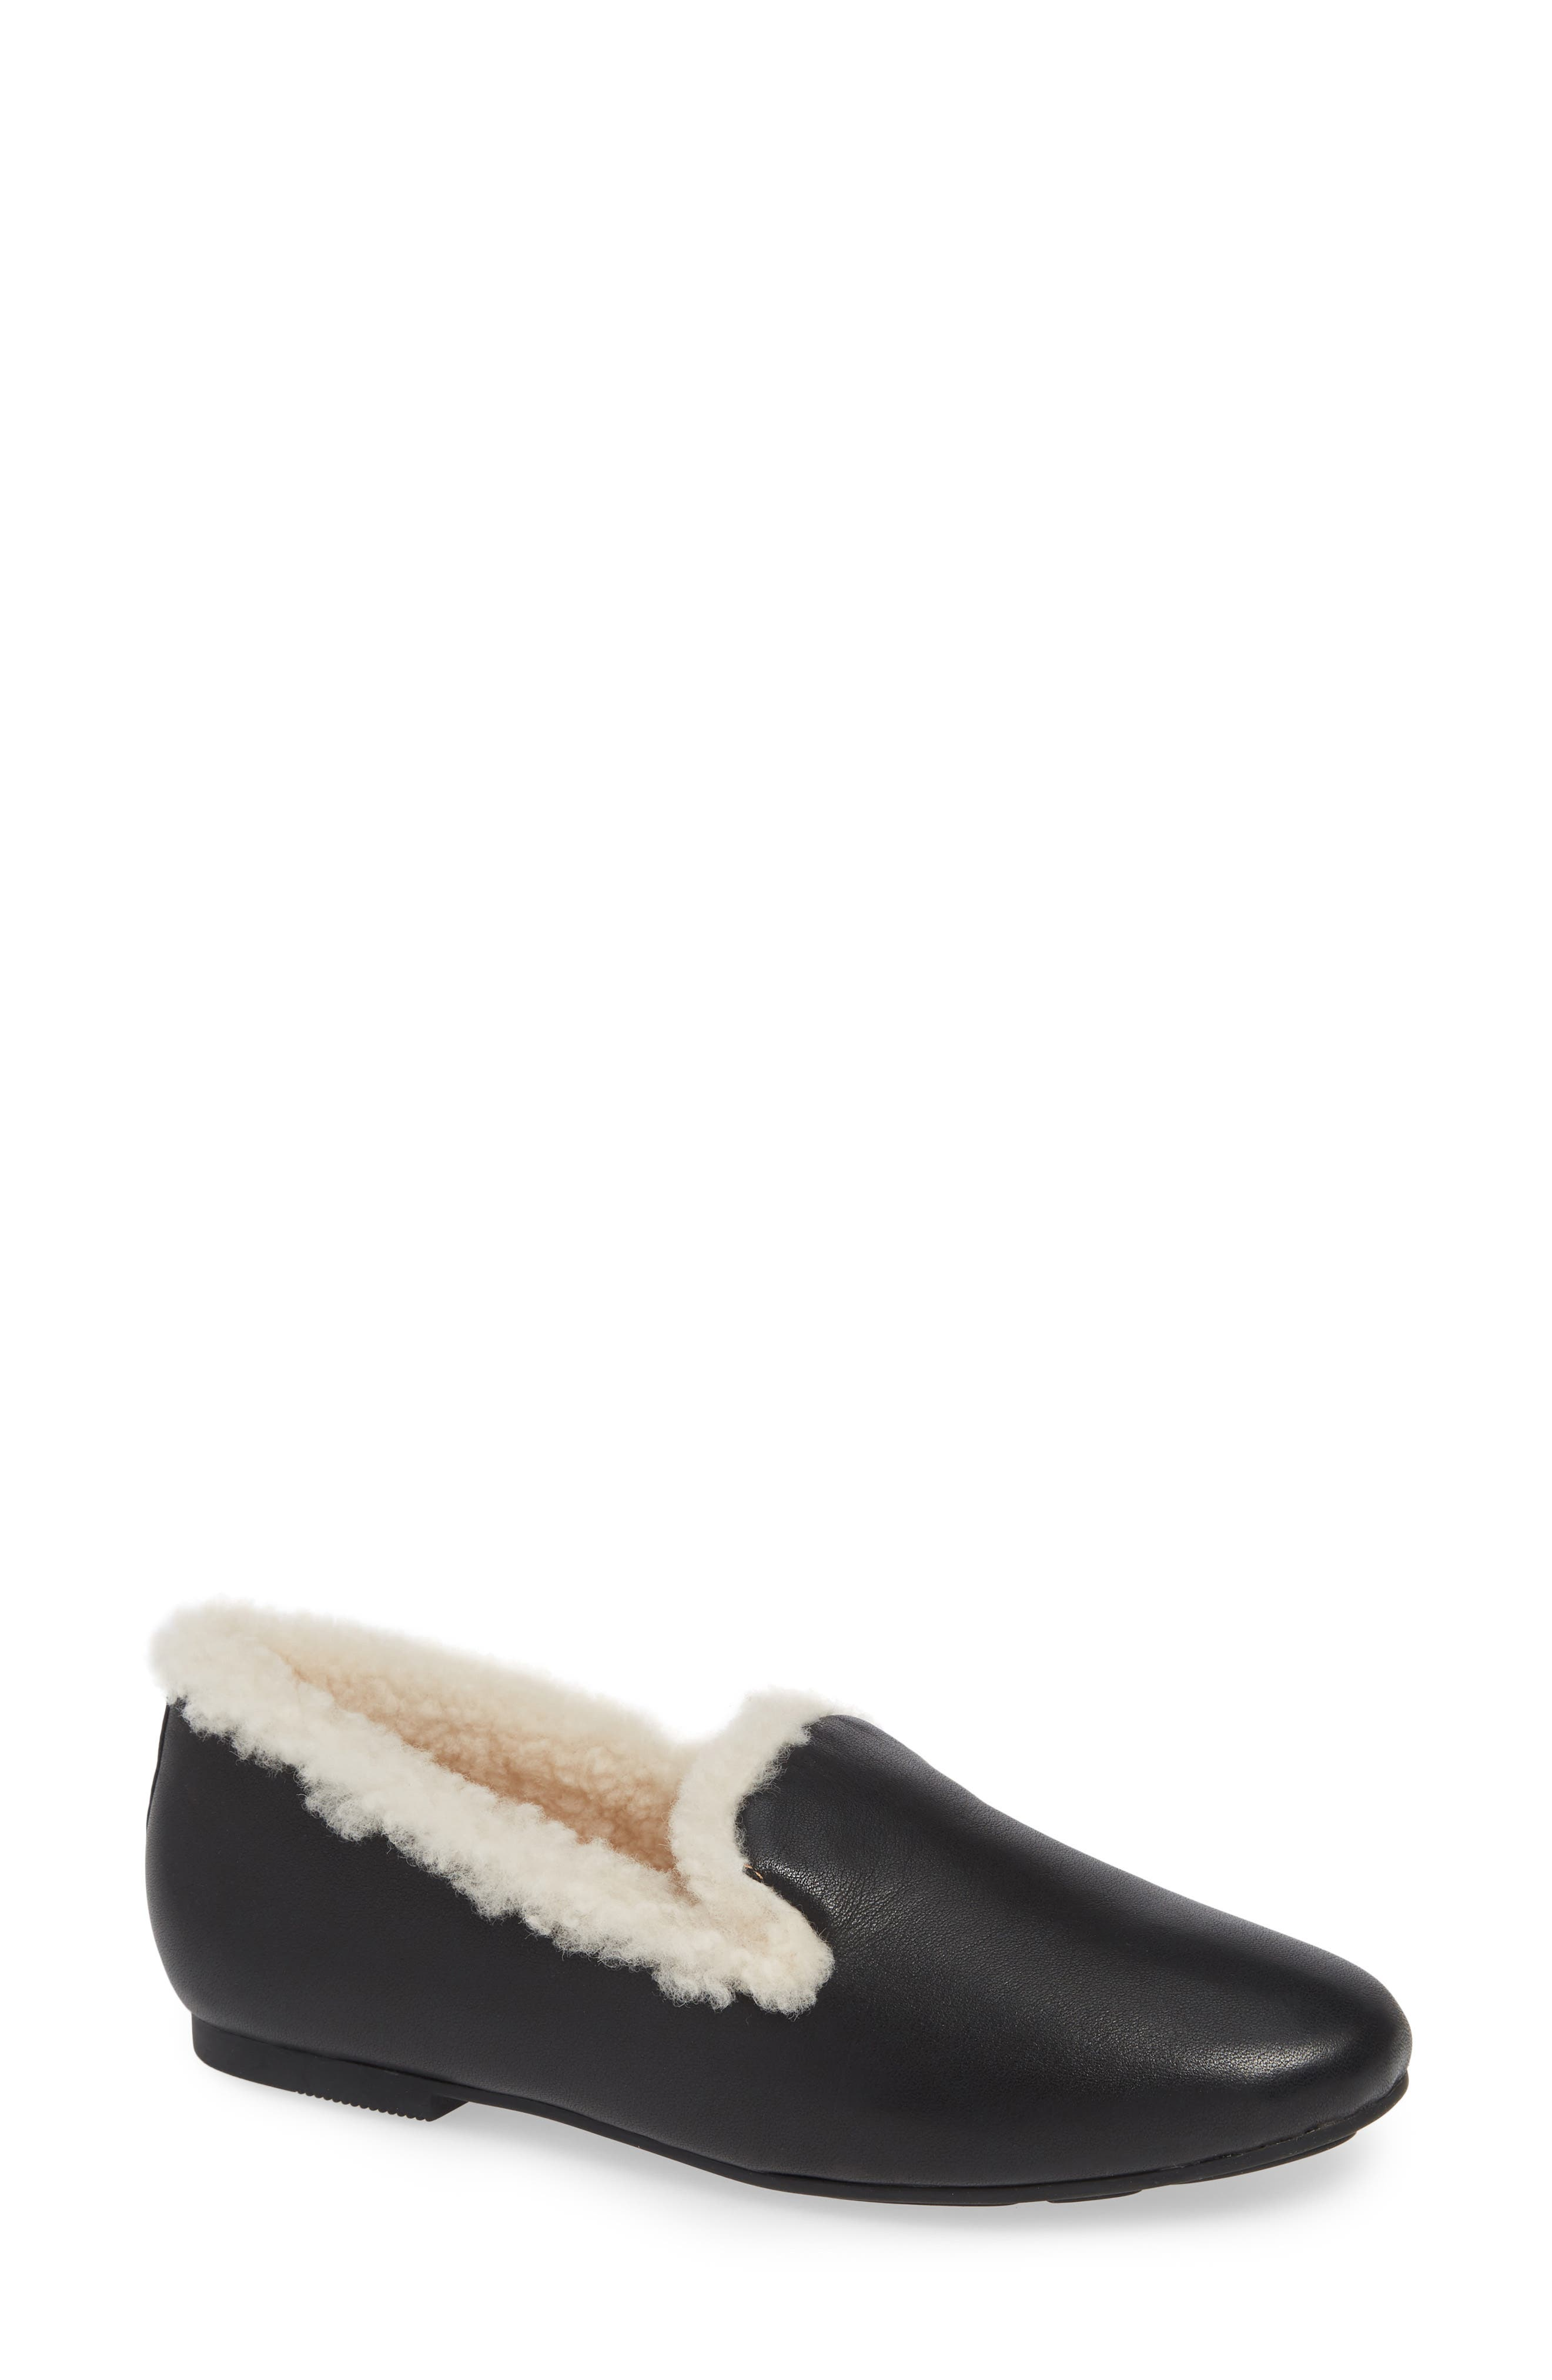 GENTLE SOULS BY KENNETH COLE Eugene Genuine Shearling Lined Loafer, Main, color, 011